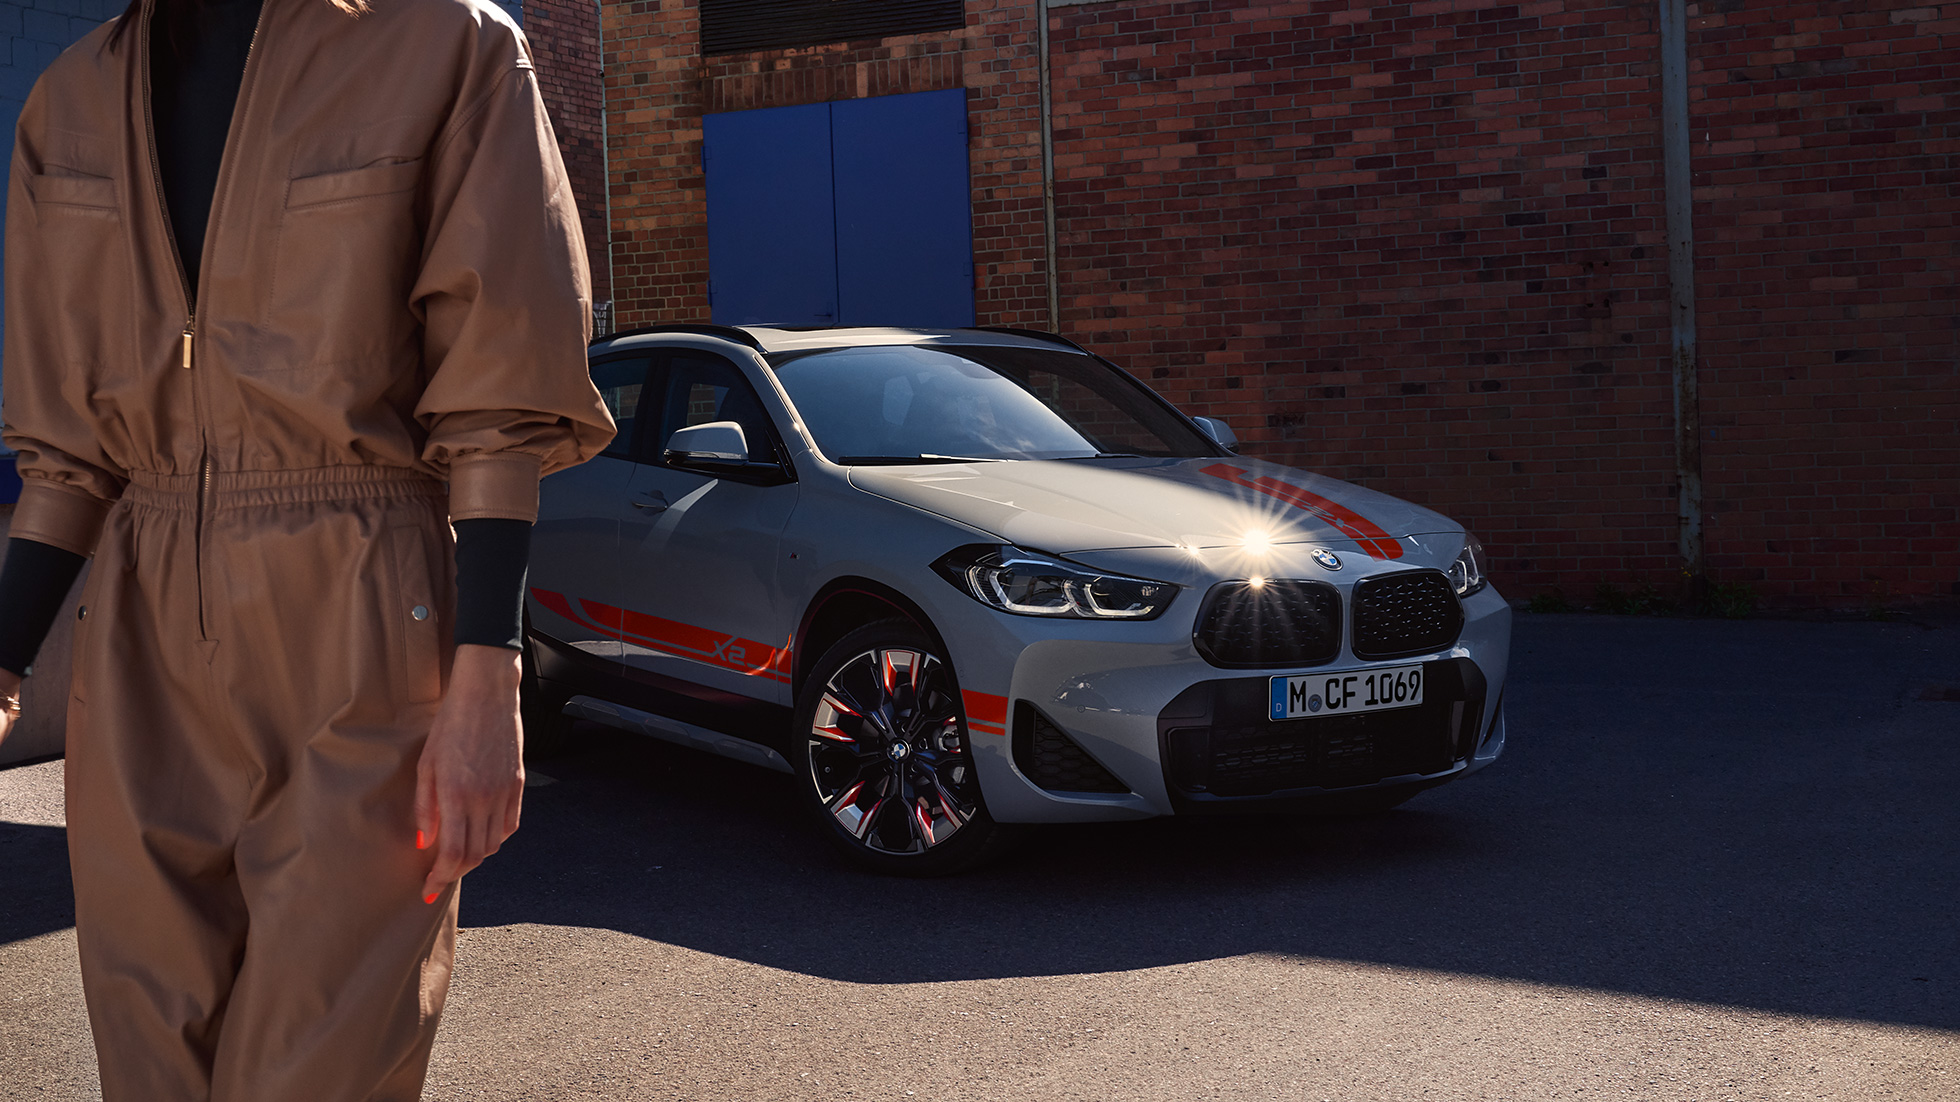 BMW X2 2018 F39 Galvanic Gold metallic front view Double kidney